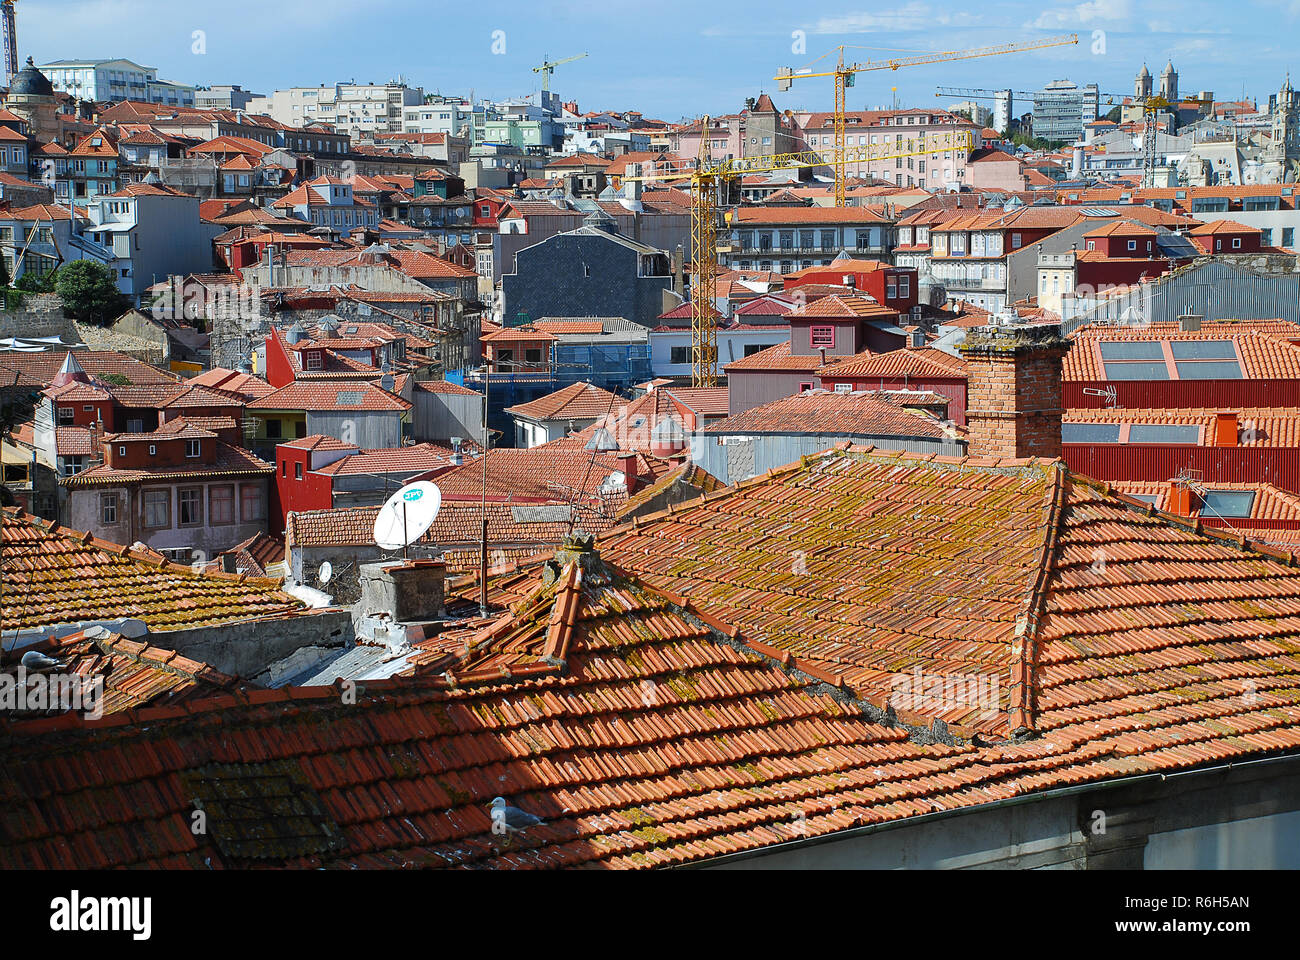 Colored facades and roofs of houses in Porto, Portugal. - Stock Image